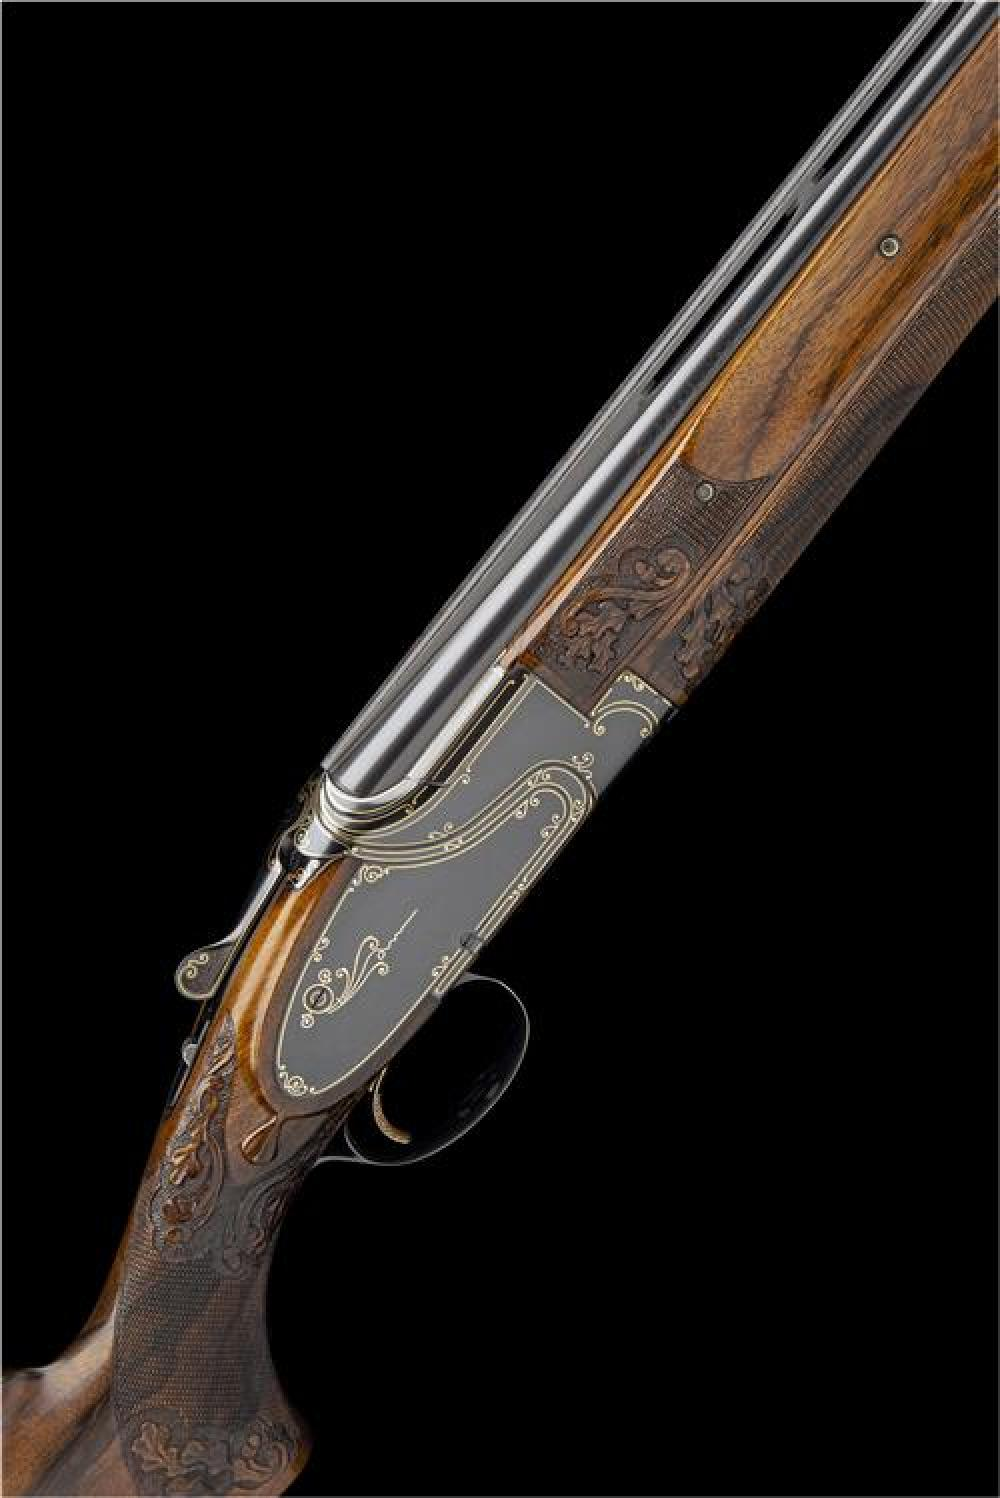 BROWNING ARMS COMPANY A RARE 12-BORE 'I1' SIDEPLATED SINGLE-